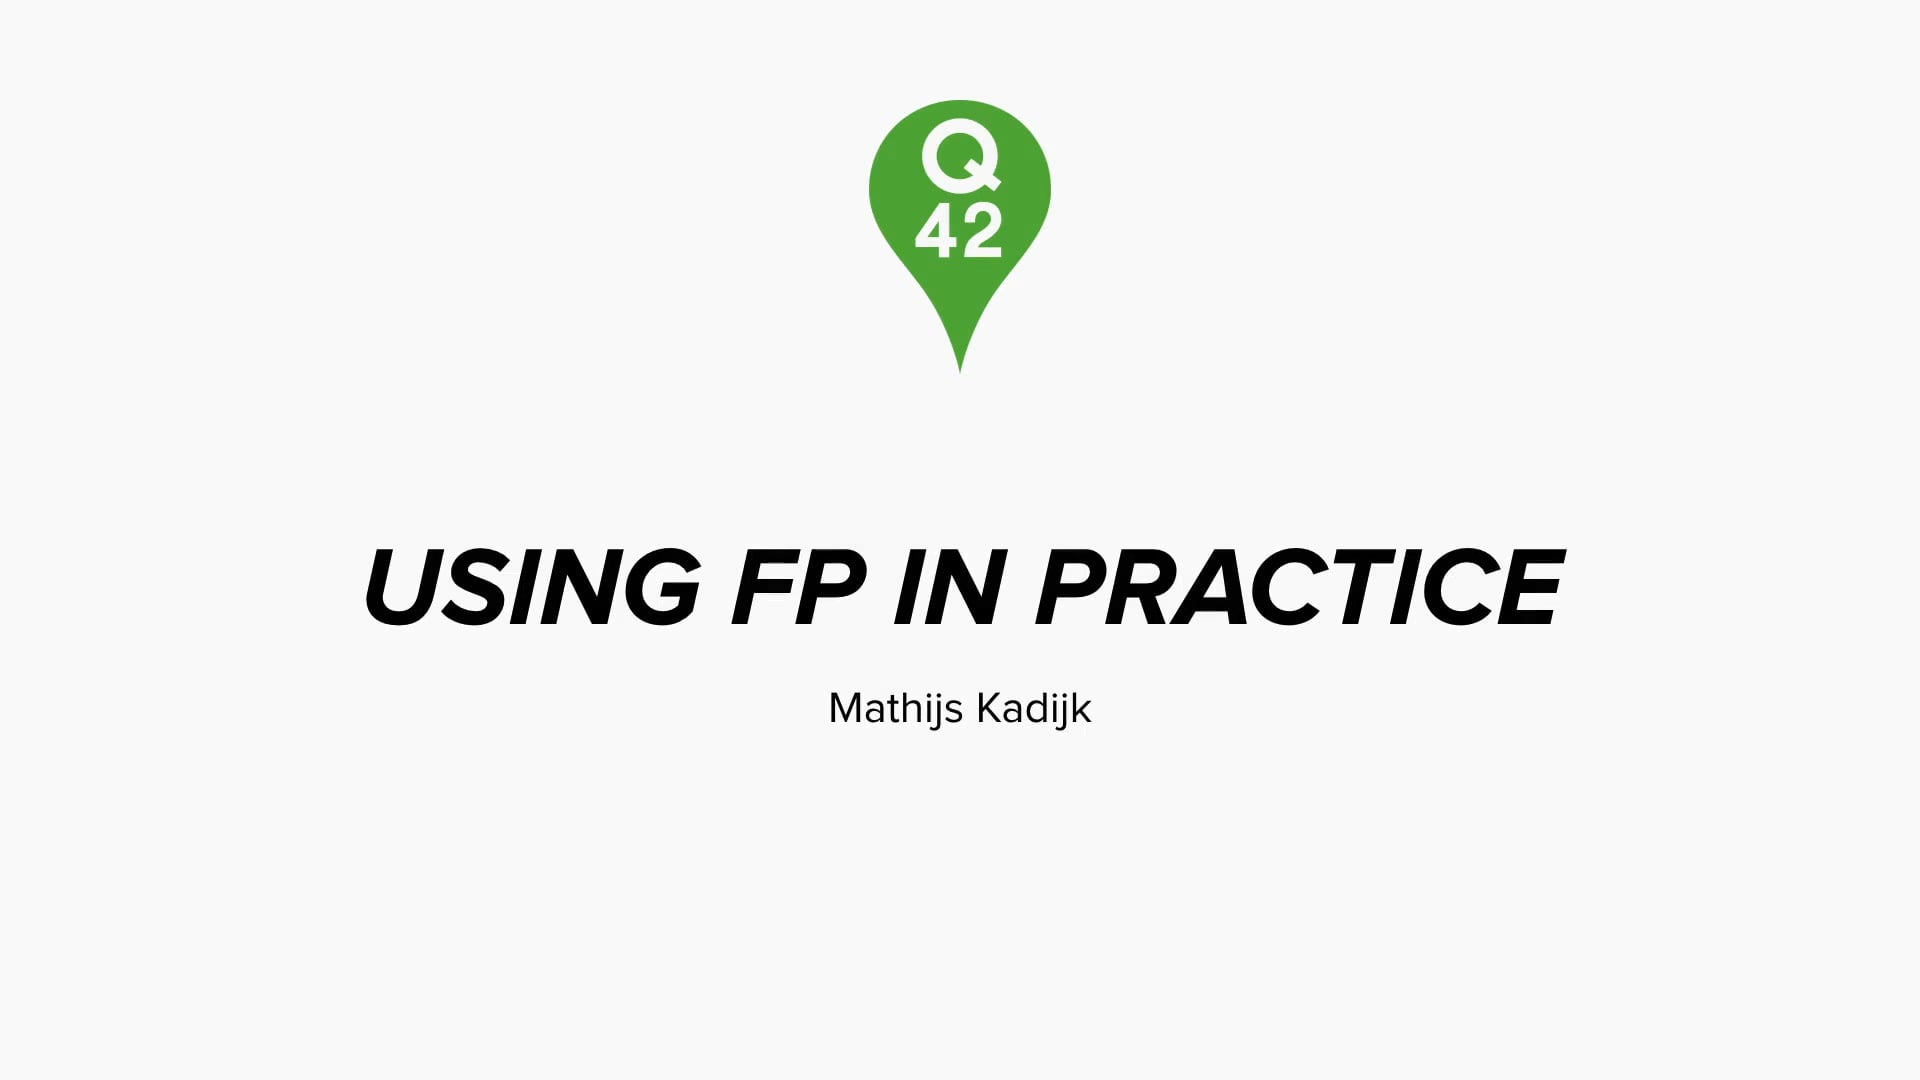 Using FP in practice